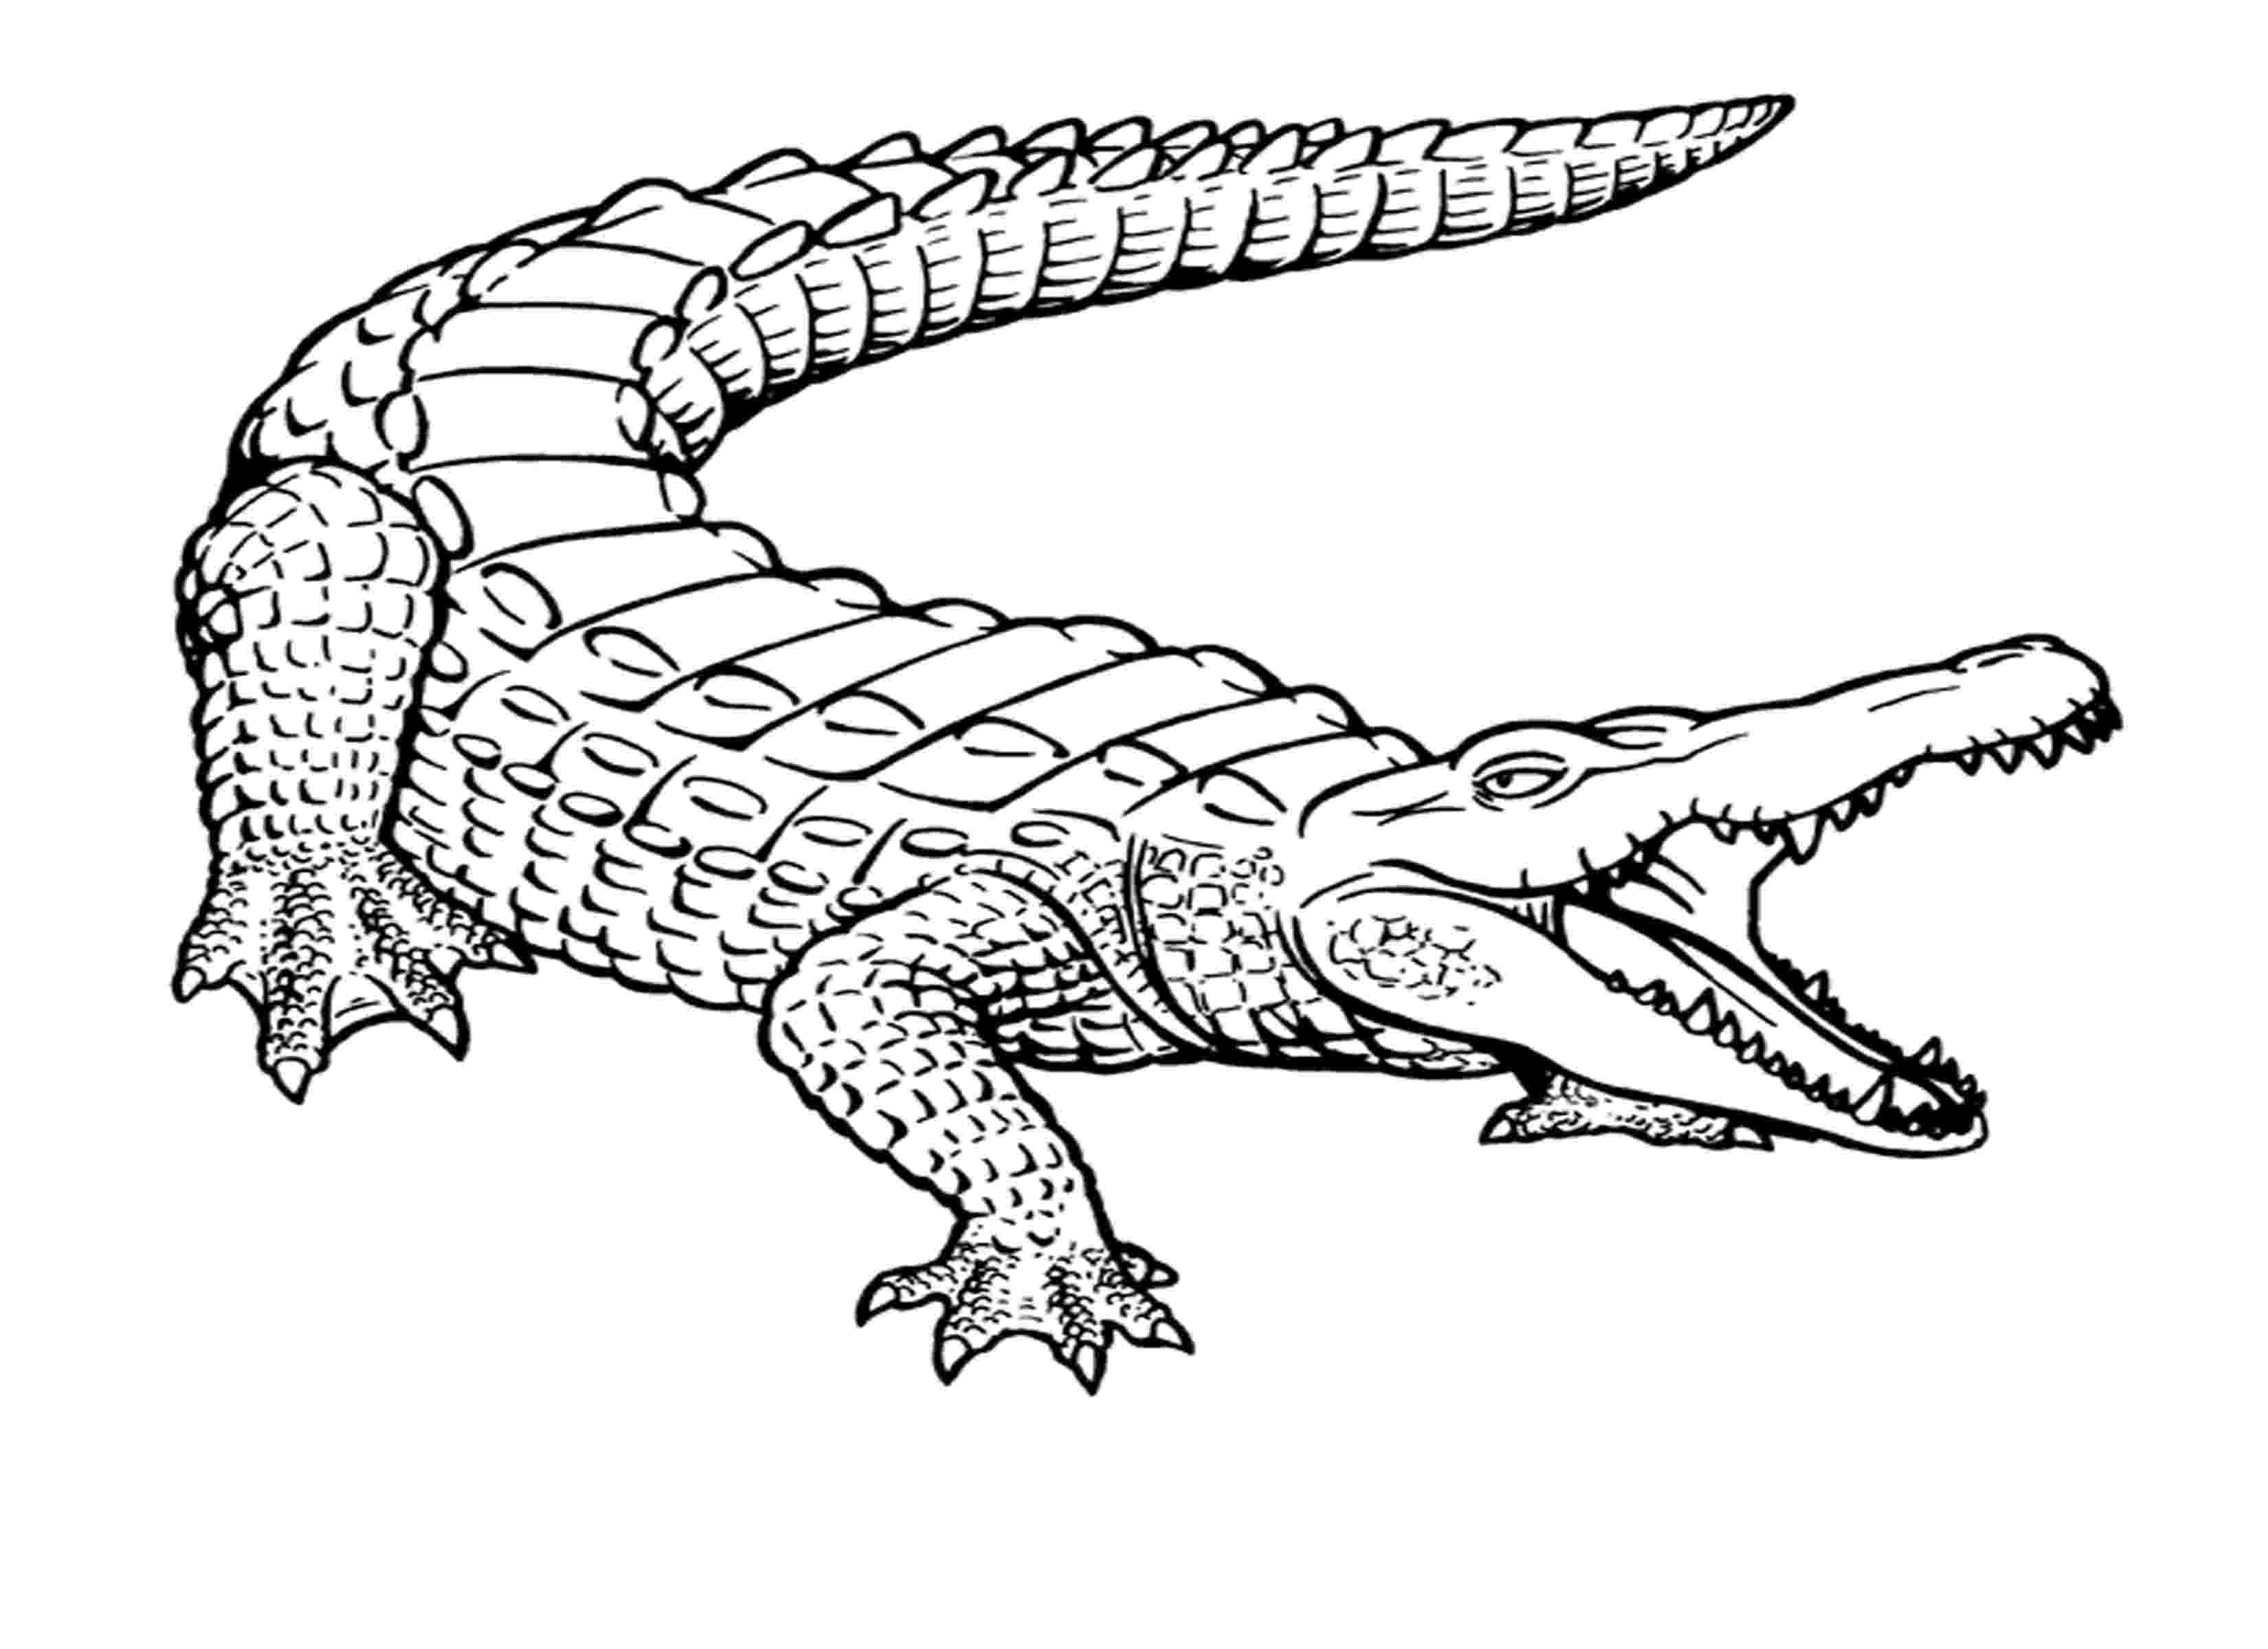 crocodile colouring pictures crocodile coloring pages to download and print for free crocodile colouring pictures